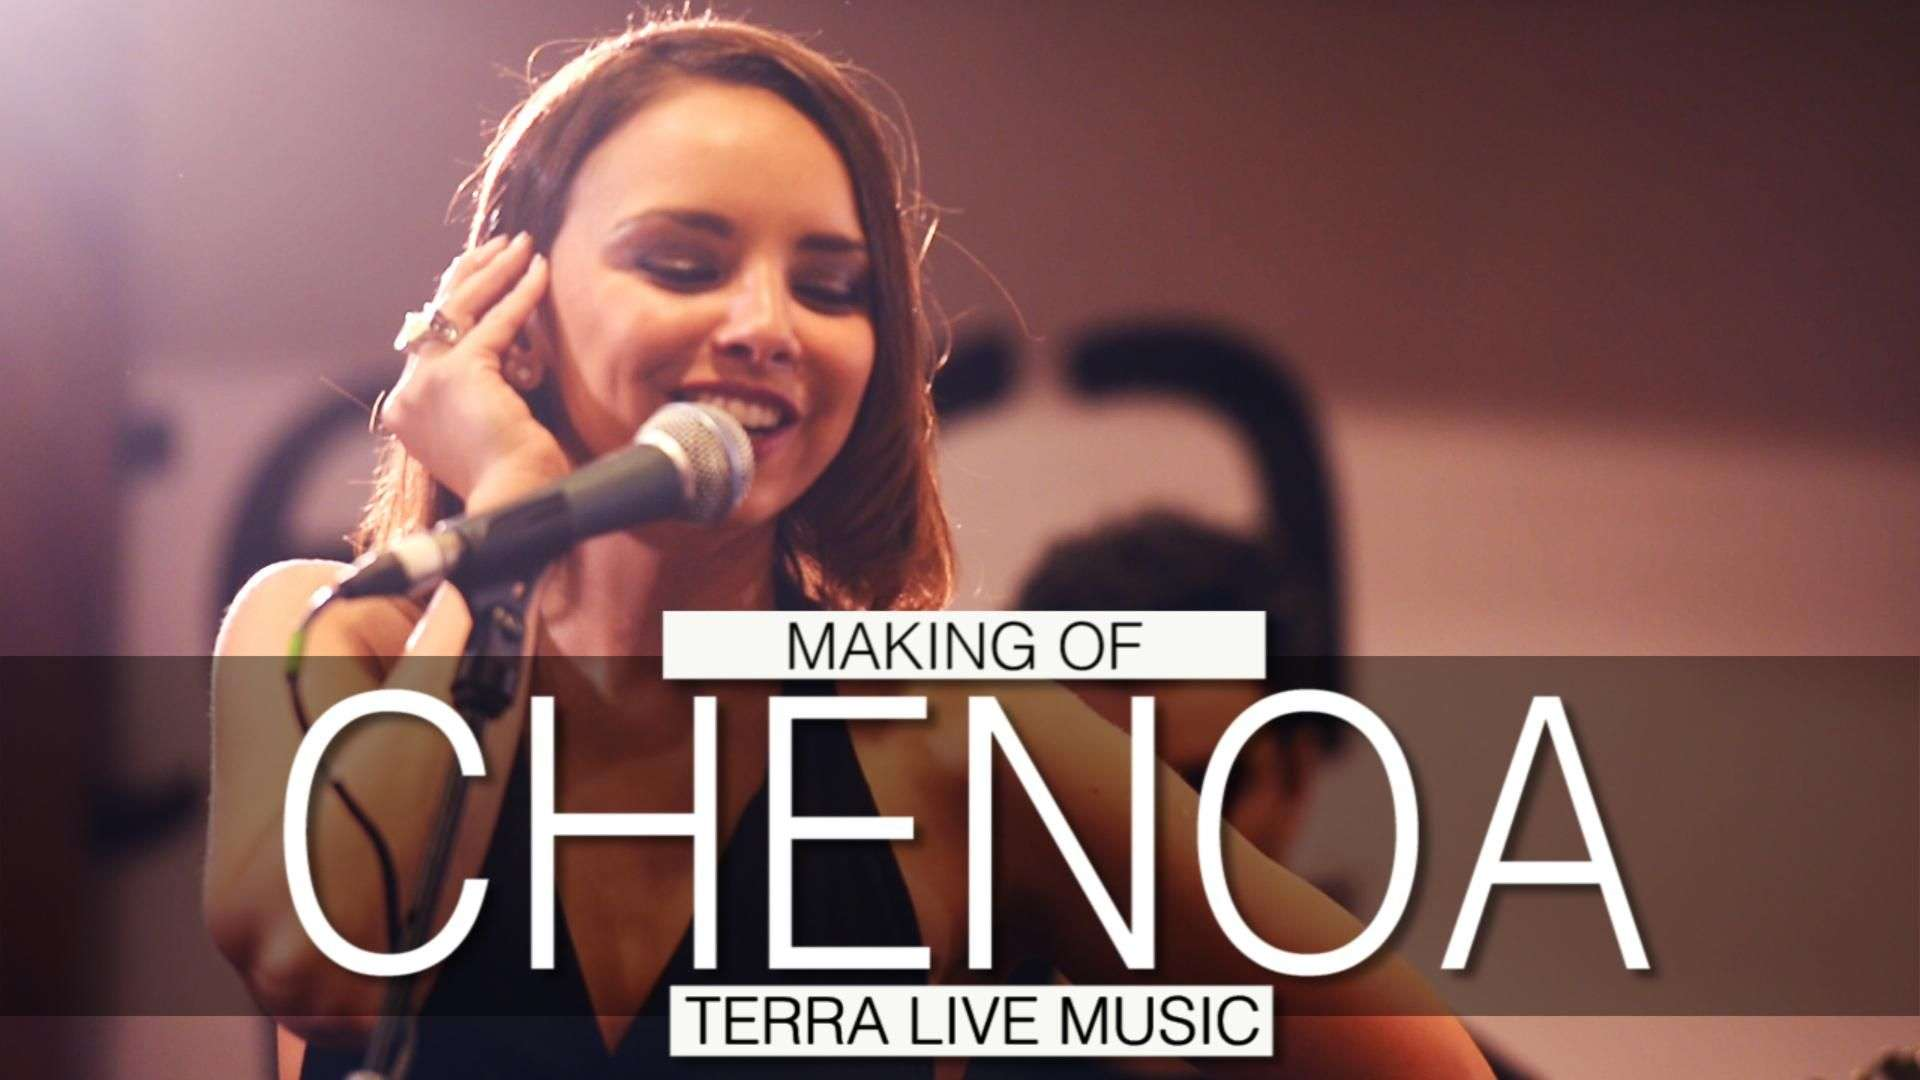 Making of del showcase de Chenoa en Terra Live Music